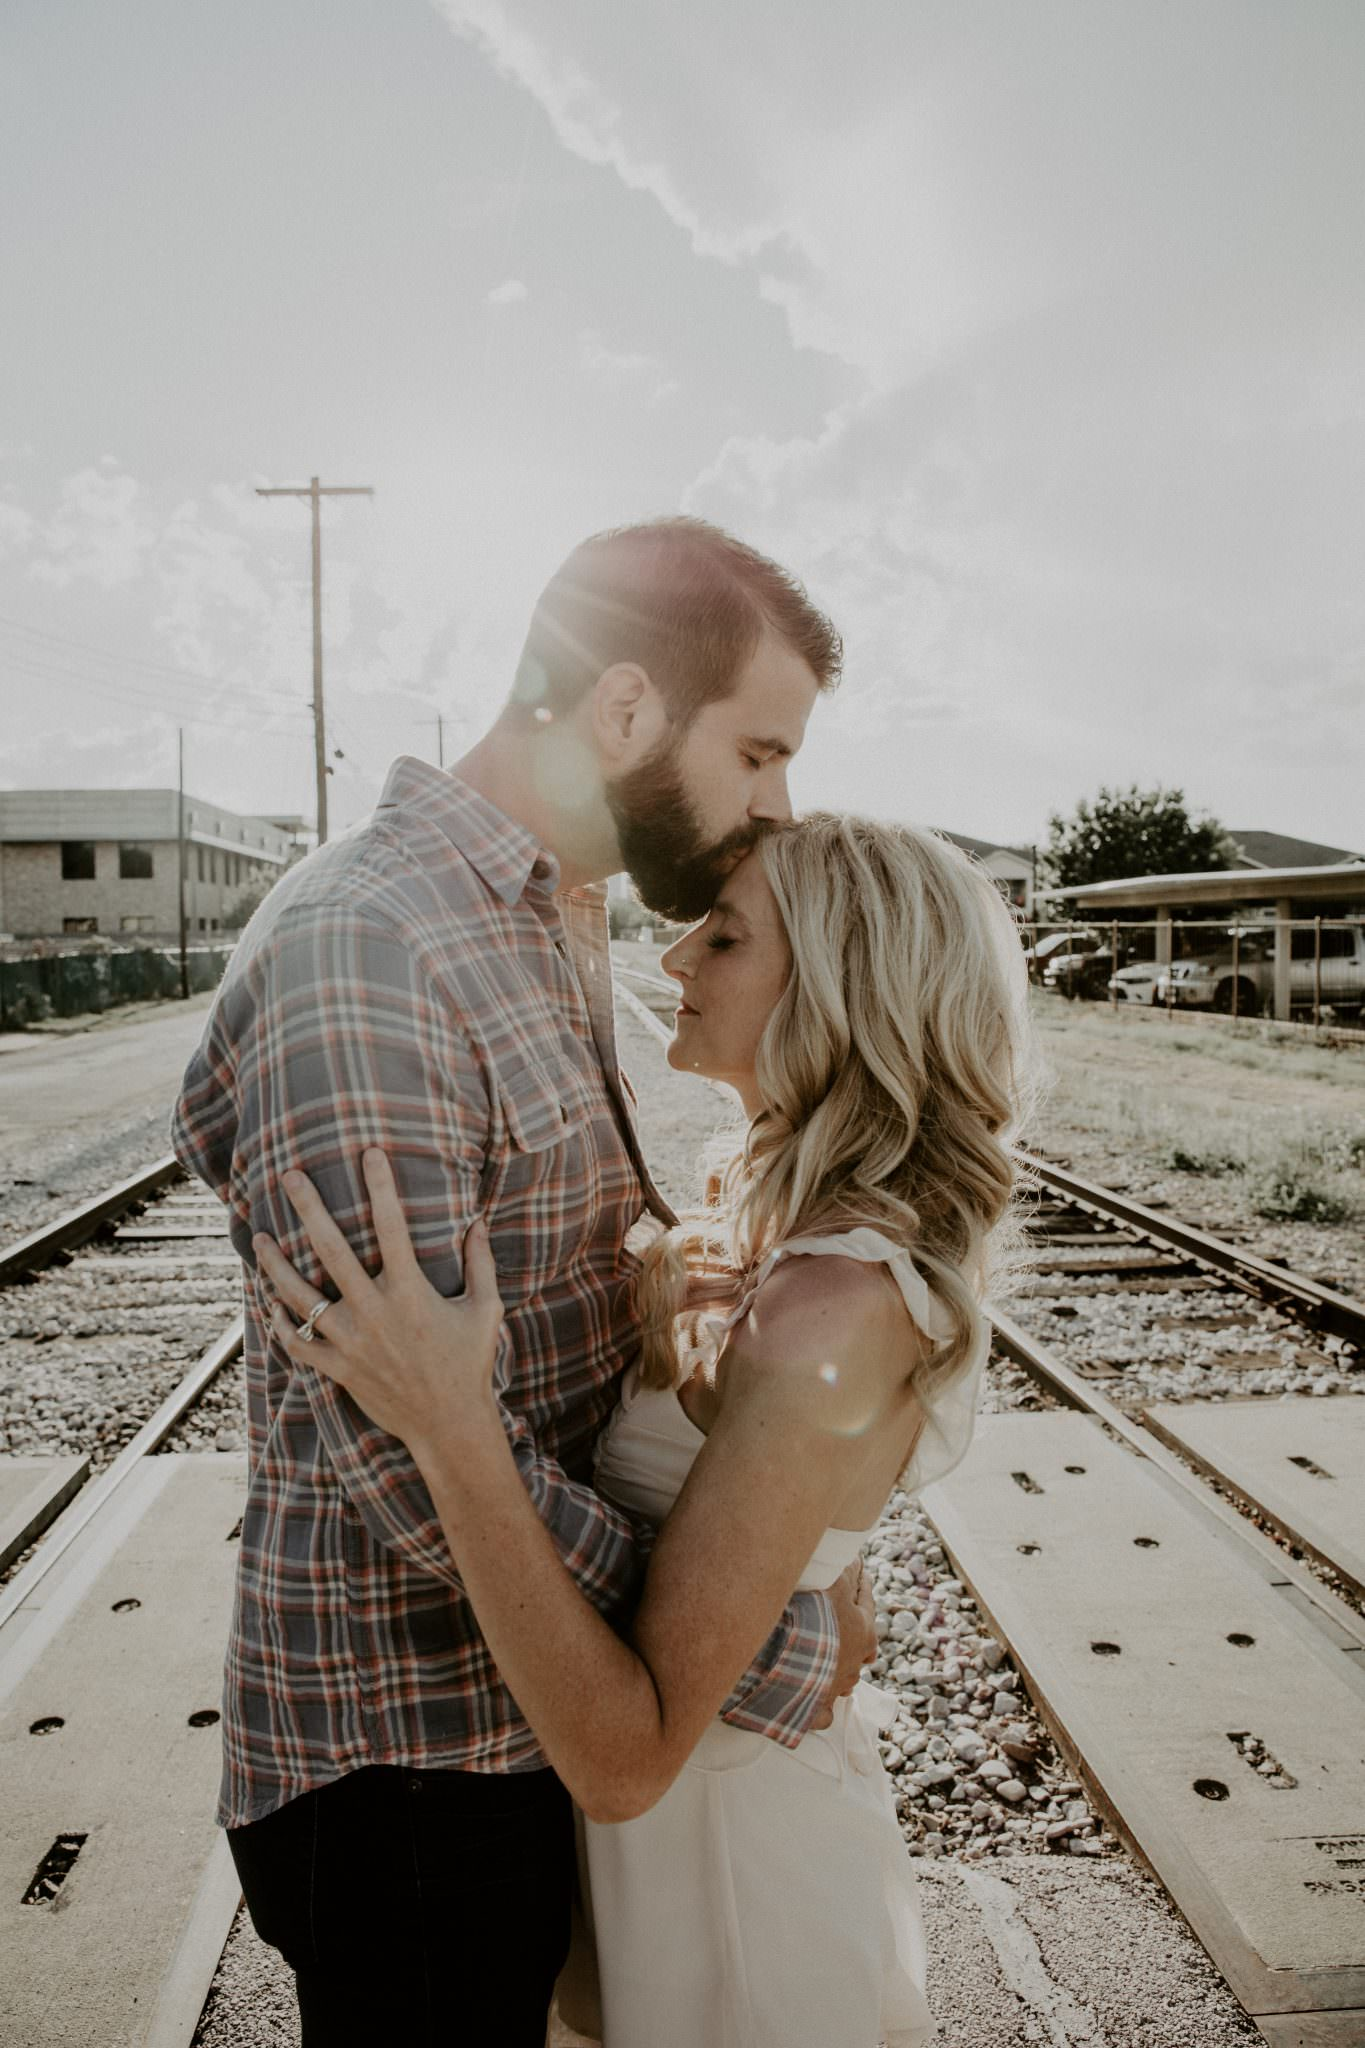 Engagement shoot with couple embracing with their eyes closed on railroad tracks with the sun shining behind them as the groom to be kisses the bride to be on the forehead. Photograph by Austin, Texas wedding photographer Nikk Nguyen.